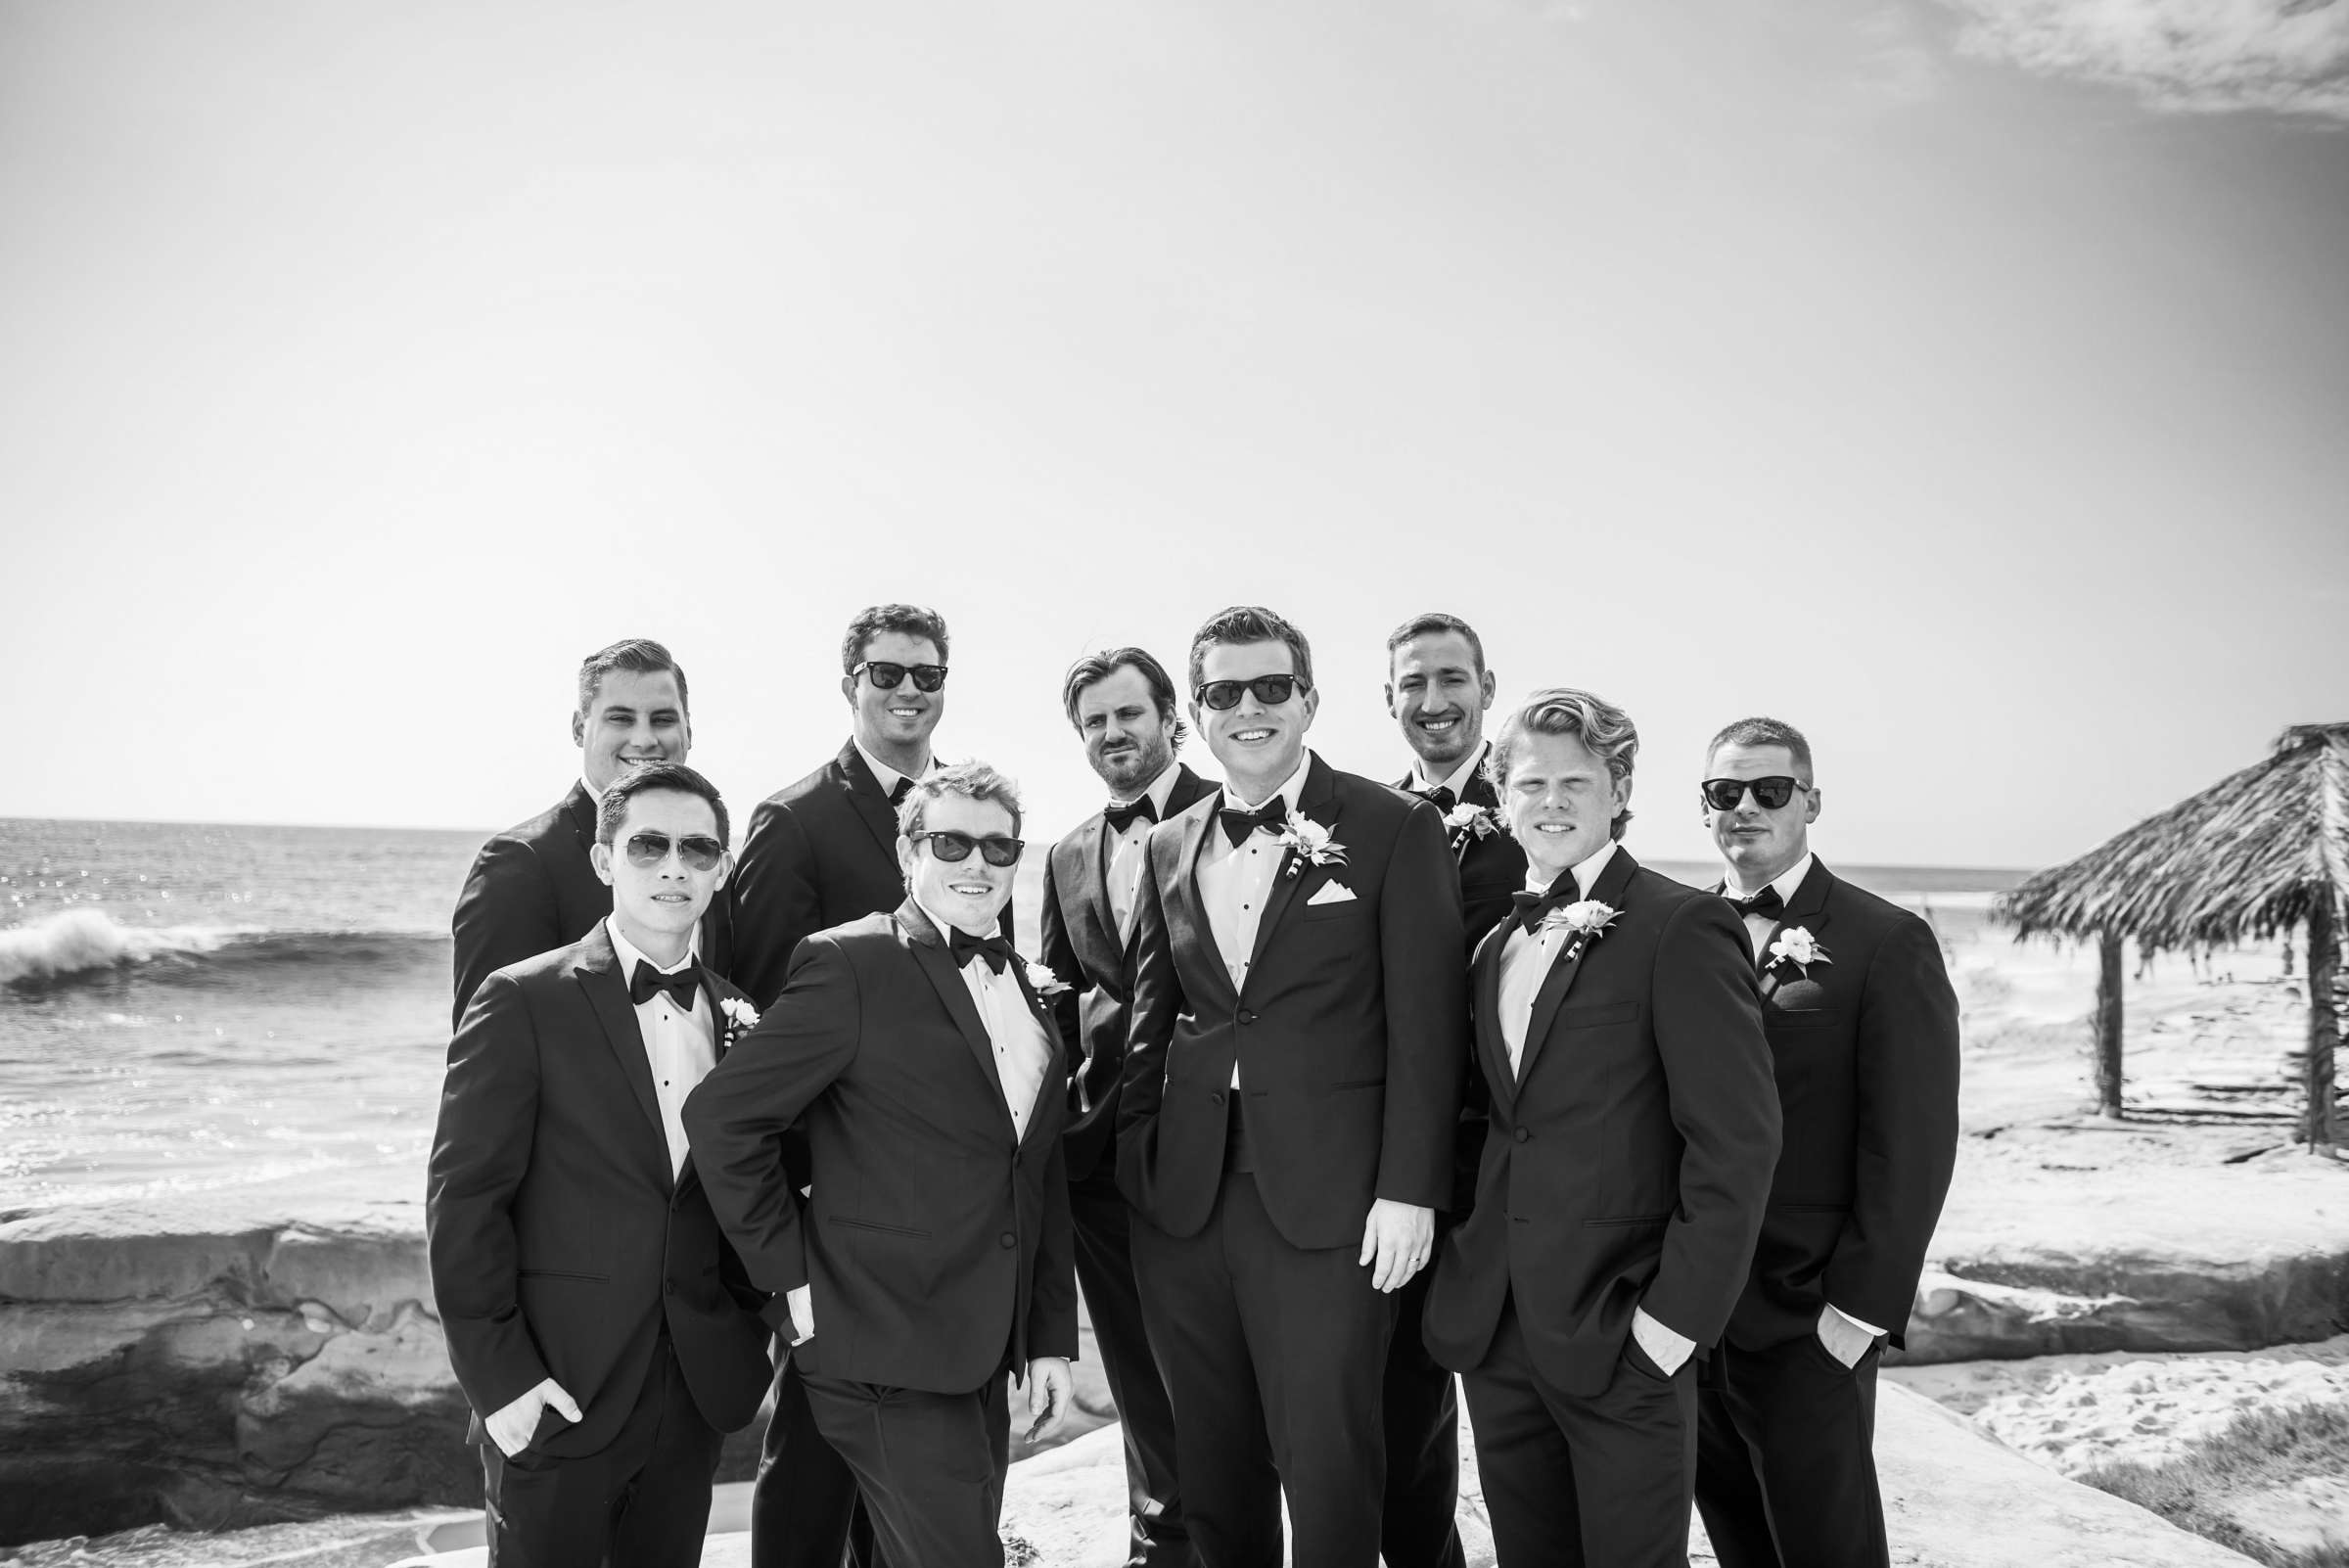 Bahia Hotel Wedding coordinated by I Do Weddings, Meredith and Jack Wedding Photo #57 by True Photography